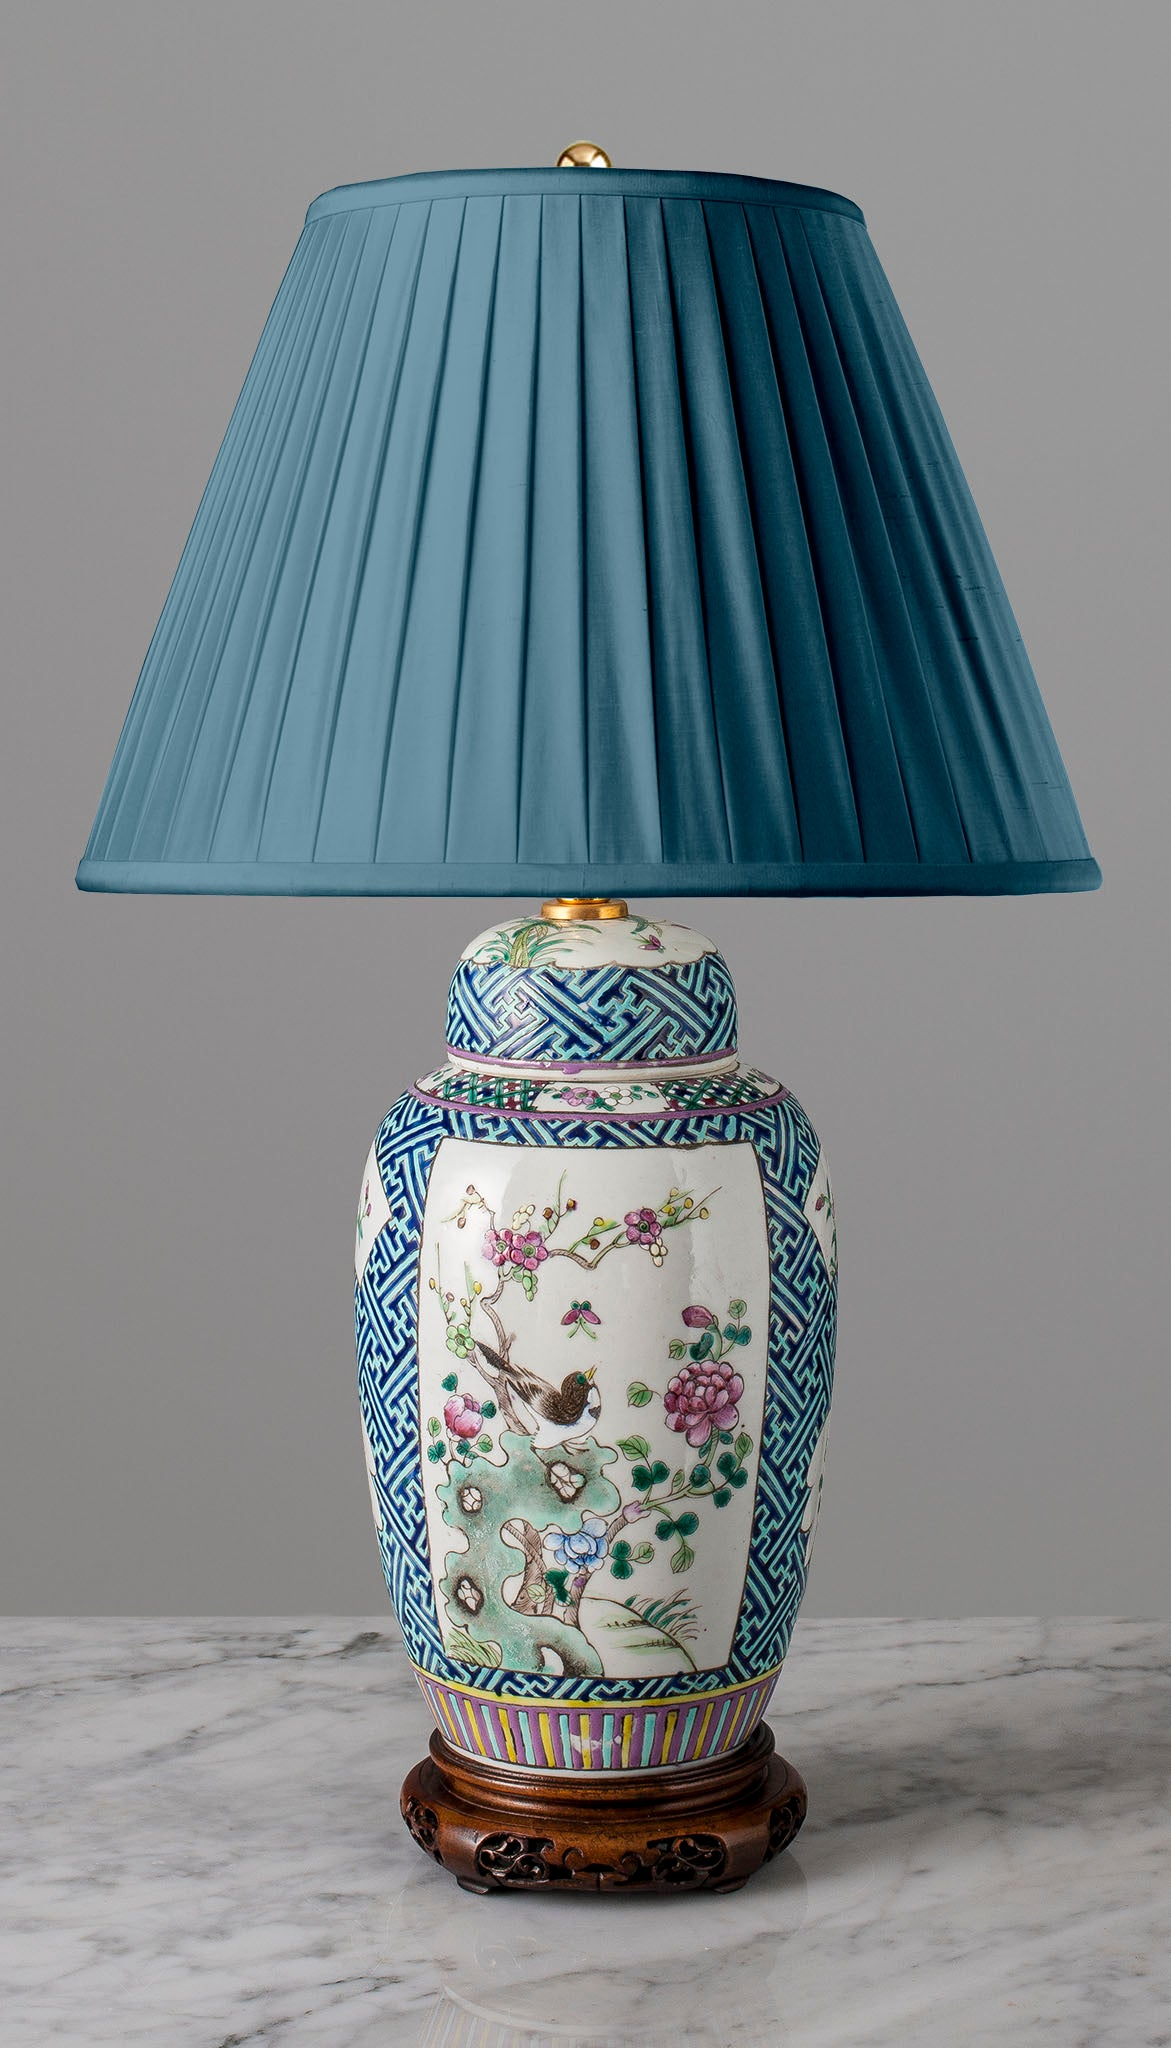 G044 A Decorative 19th Century Chinese Lamp Of Melon Shape - Circa 1870